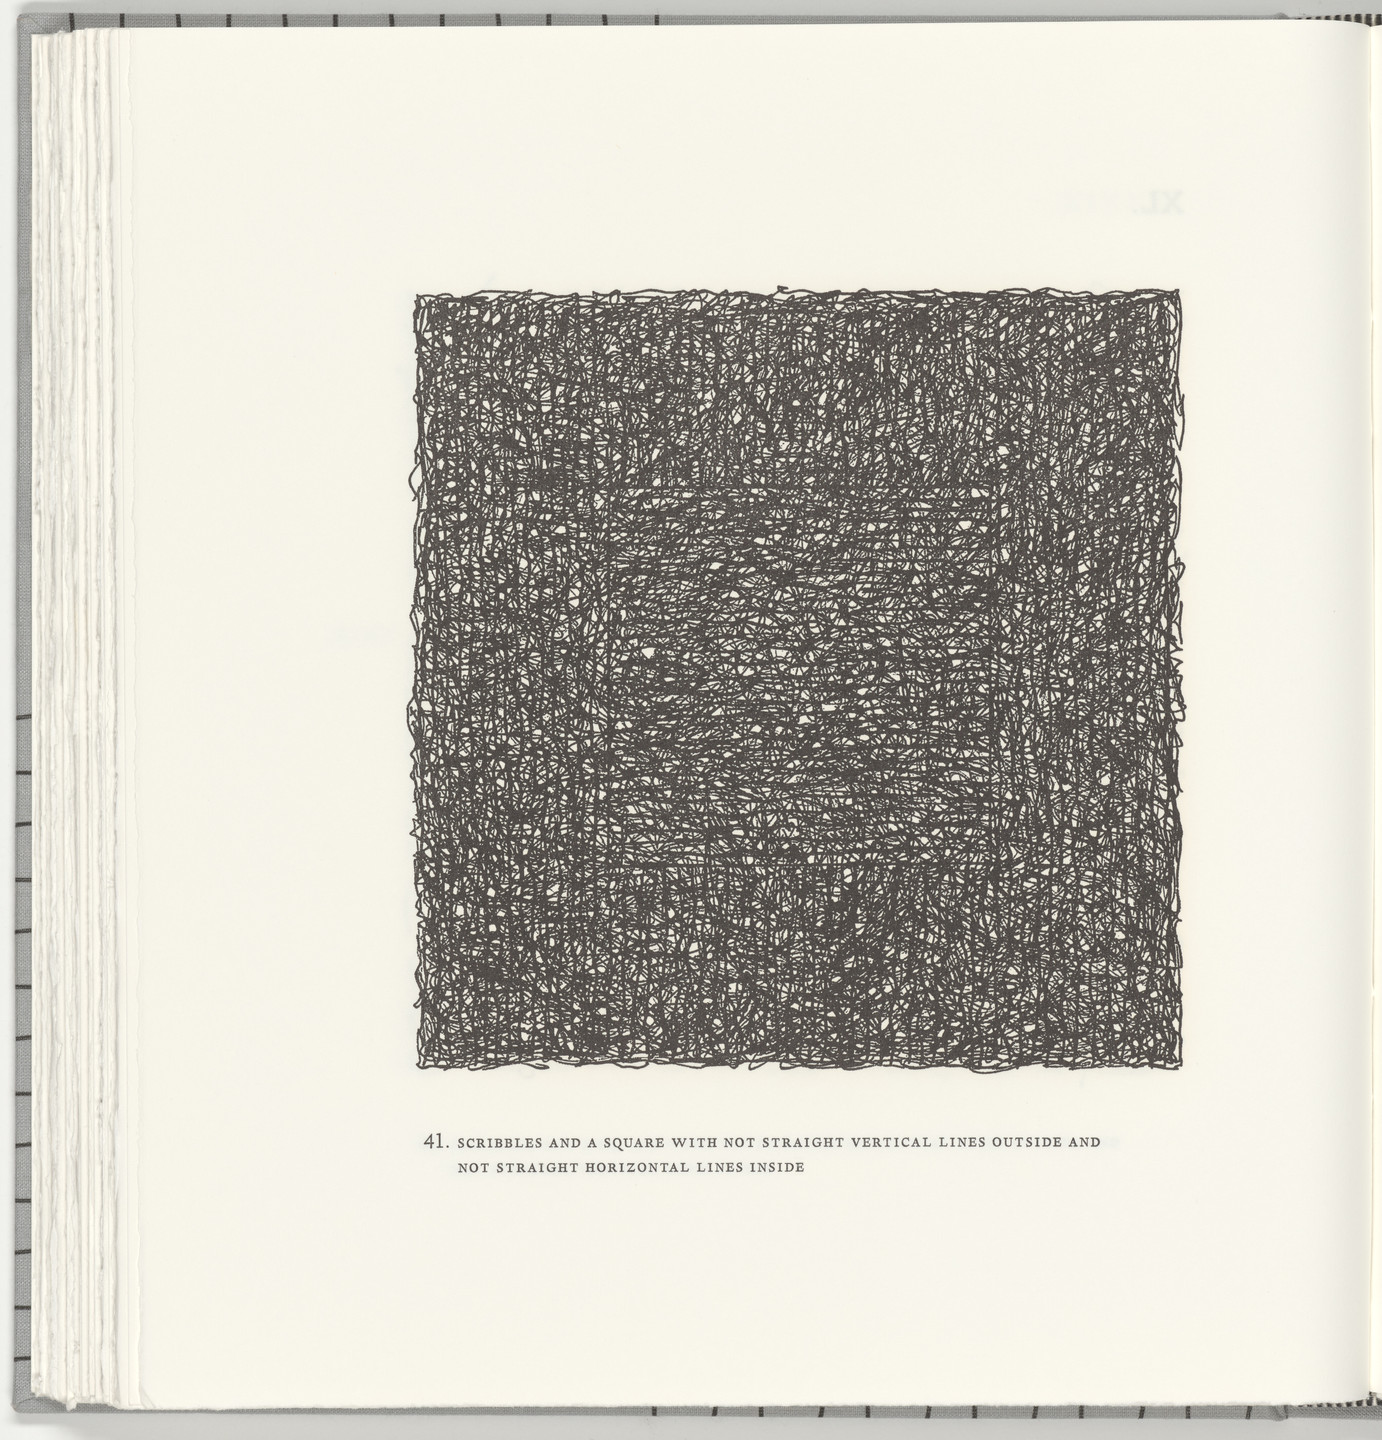 Sol LeWitt. Scribbles and a Square with Not Straight Vertical Lines Outside and Not Straight Horizontal Lines Inside (plate 41) from Squarings. 2003